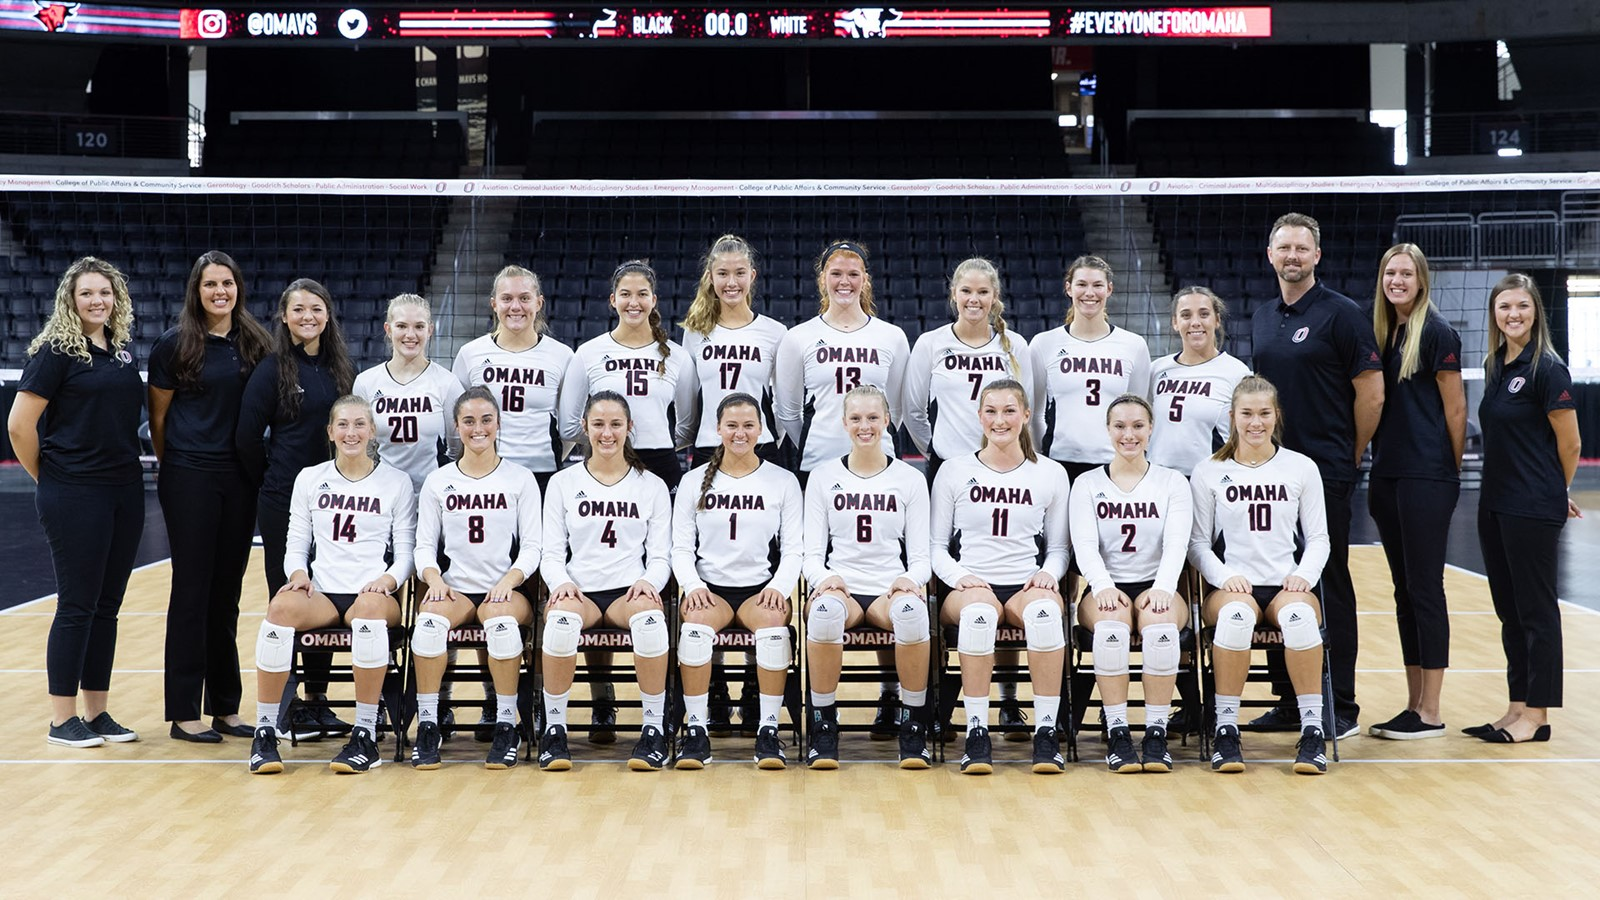 2019 Volleyball Roster University Of Nebraska Omaha Athletics